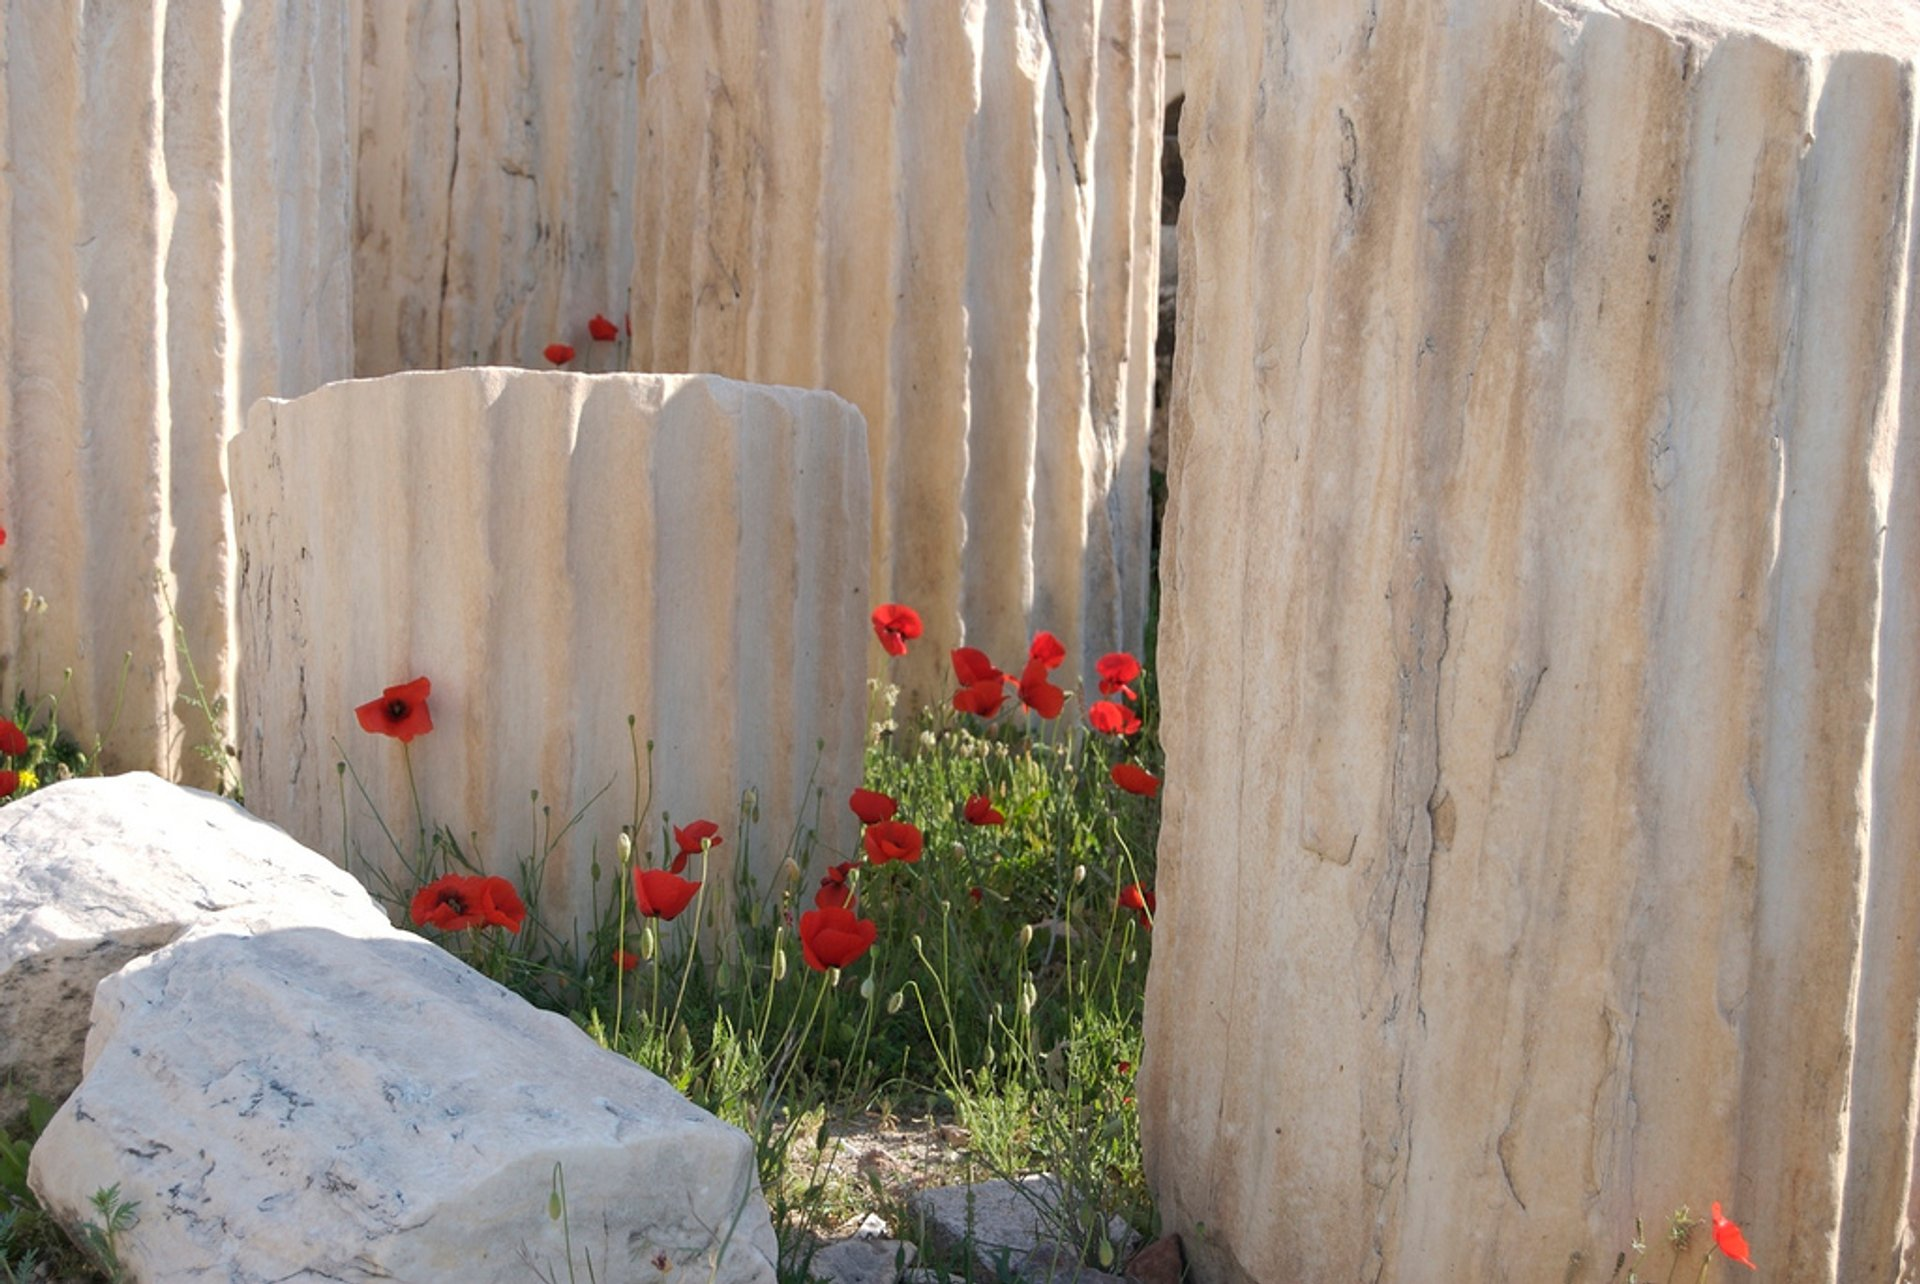 Wild Poppies at the Acropolis in Athens - Best Season